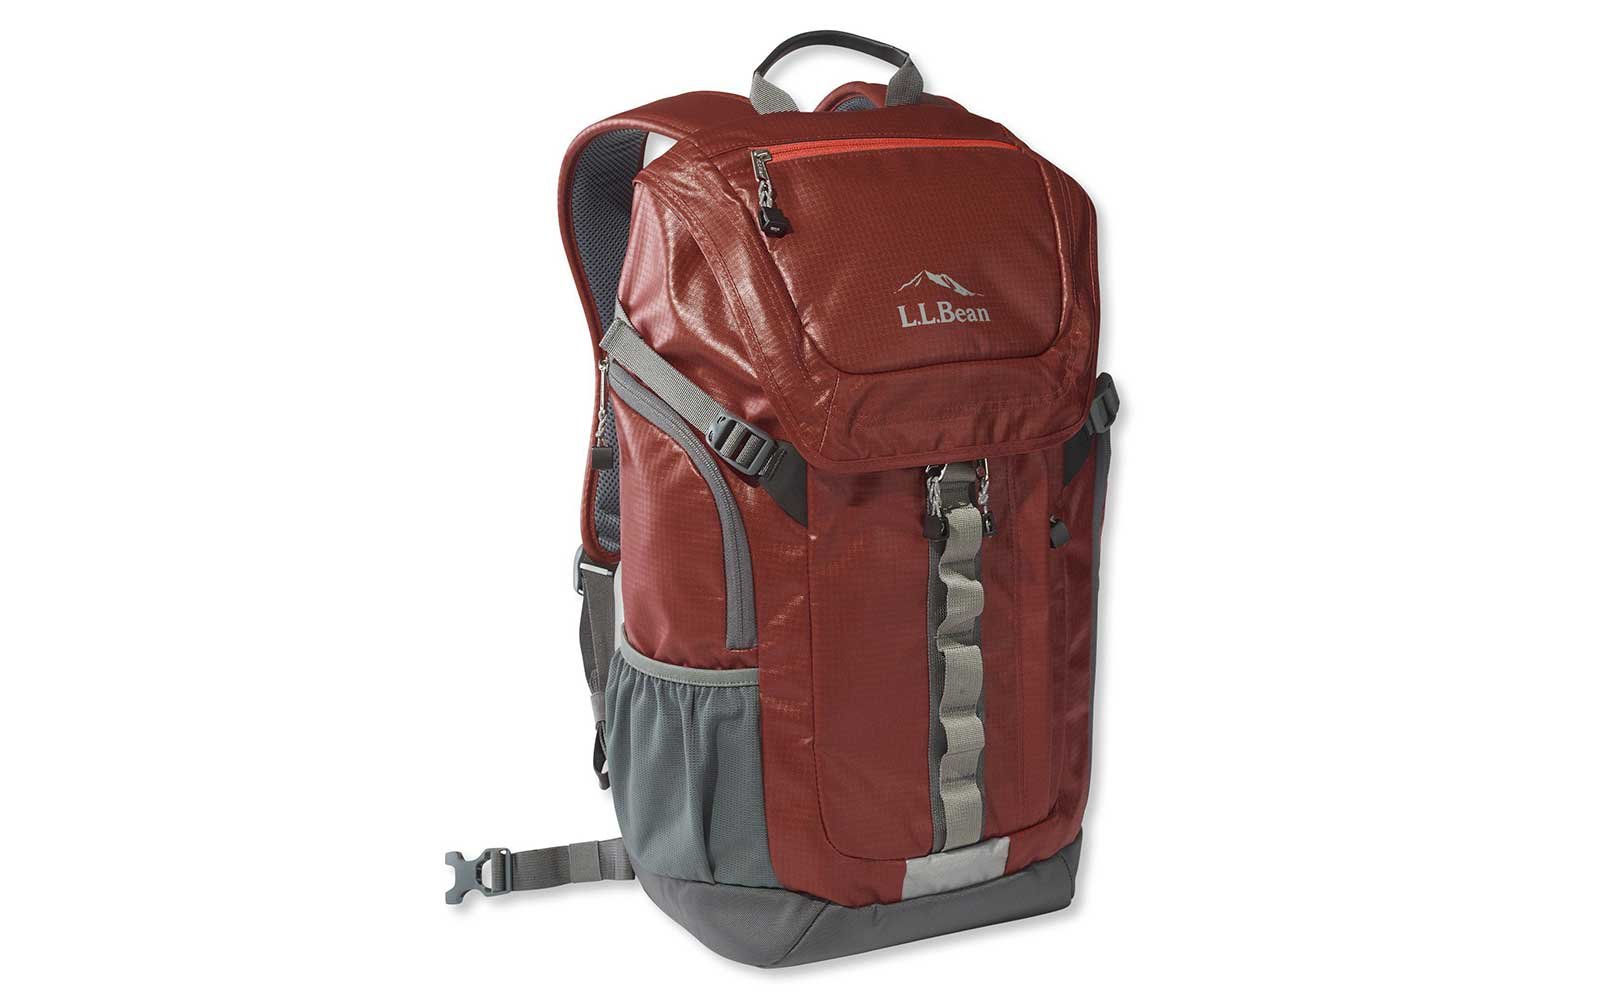 c6627c0ccc L.L.Bean Adventure Pro Pack. L.L. Bean burgundy waterproof backpack